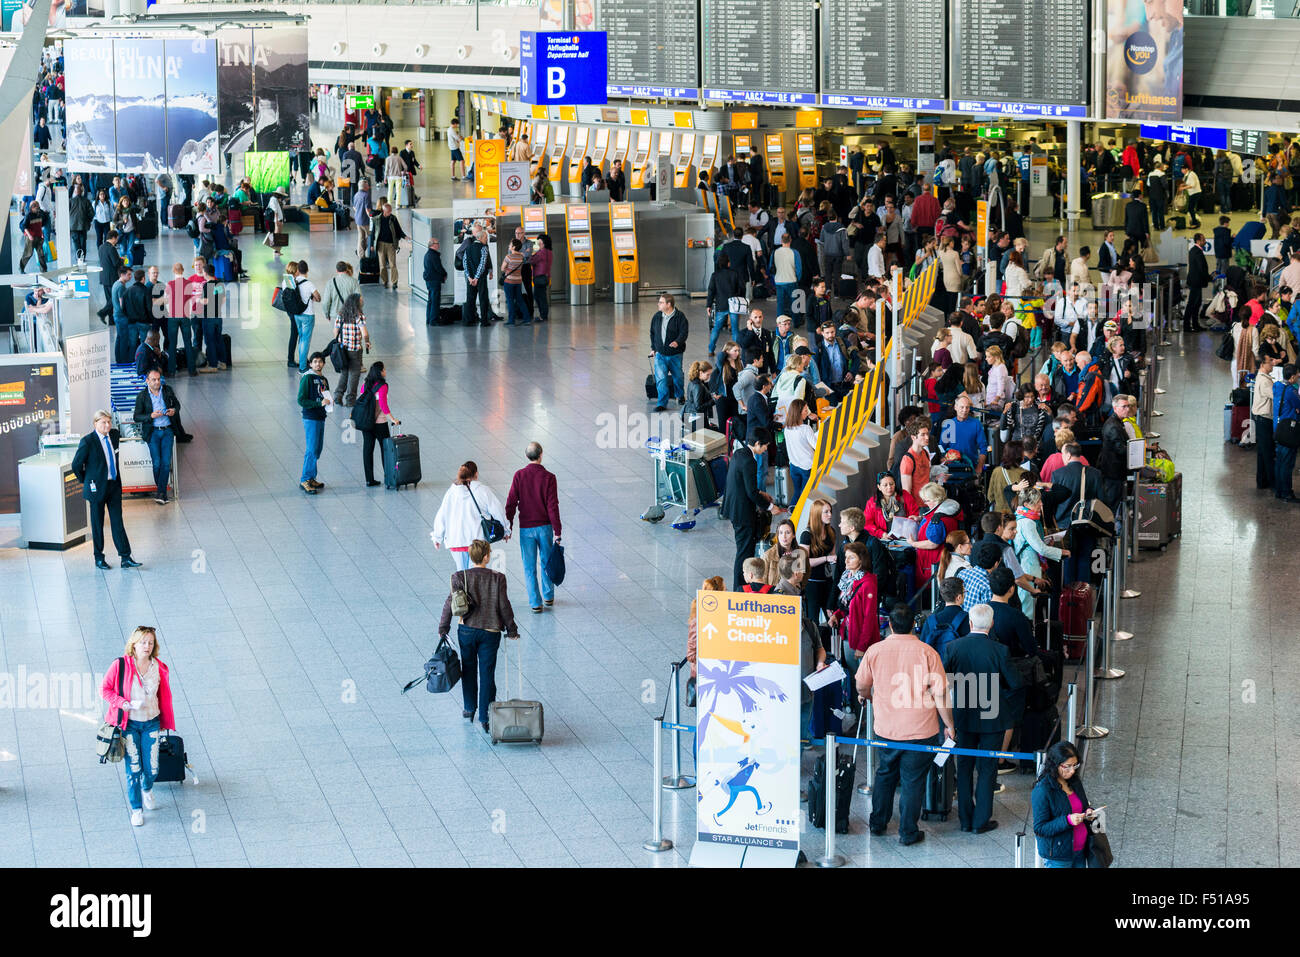 Many people are waiting for Check-in at Terminal 1 of Frankfurt International Airport - Stock Image